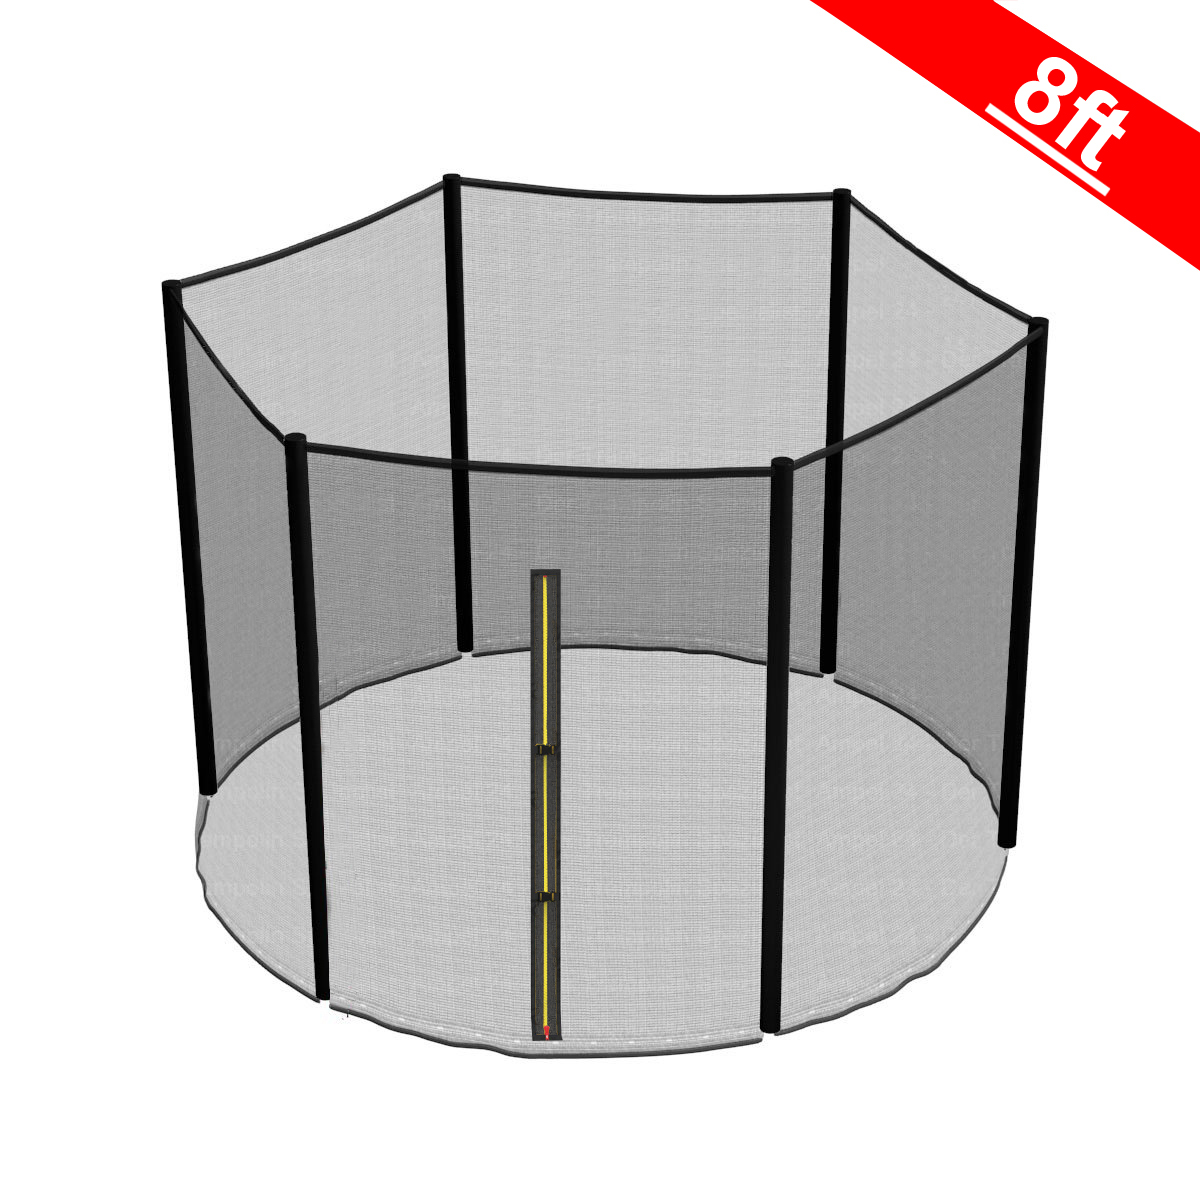 8FT Trampoline Replacement Safety Net Enclosure Surround